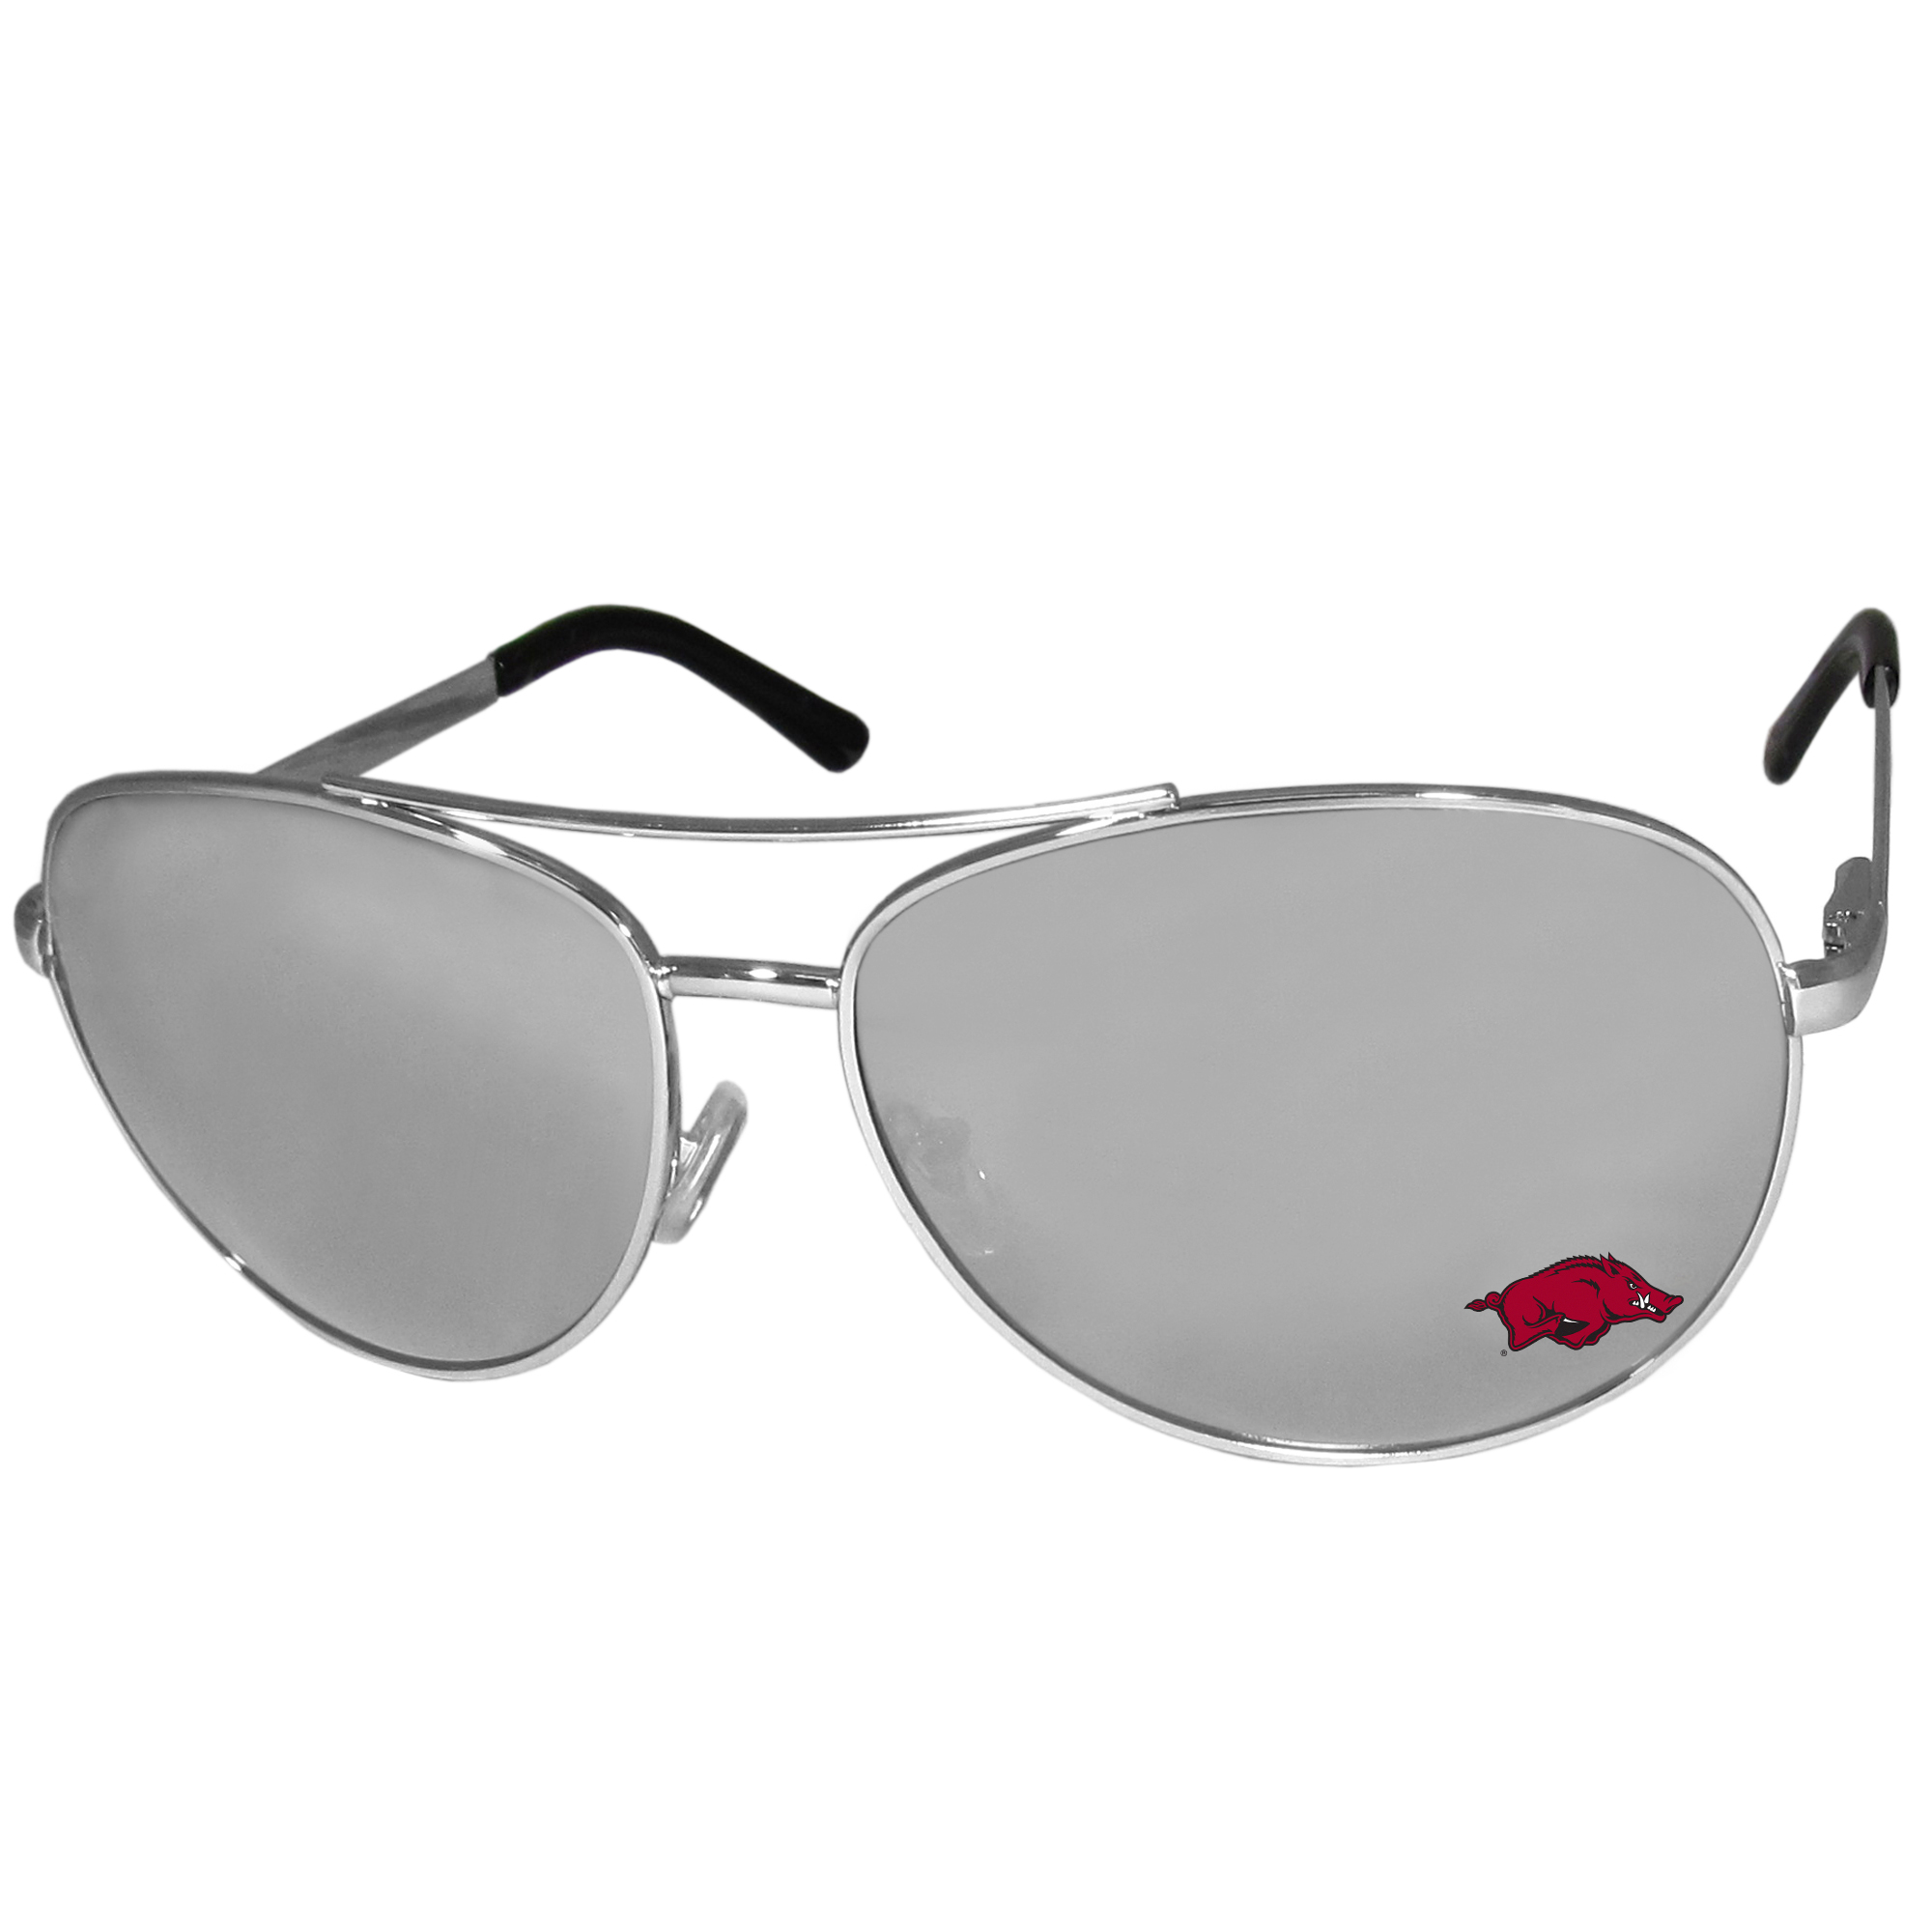 Arkansas Razorbacks Aviator Sunglasses - Our aviator sunglasses have the iconic aviator style with mirrored lenses and metal frames. The glasses feature a silk screened Arkansas Razorbacks logo in the corner of the lense. 100% UVA/UVB protection.